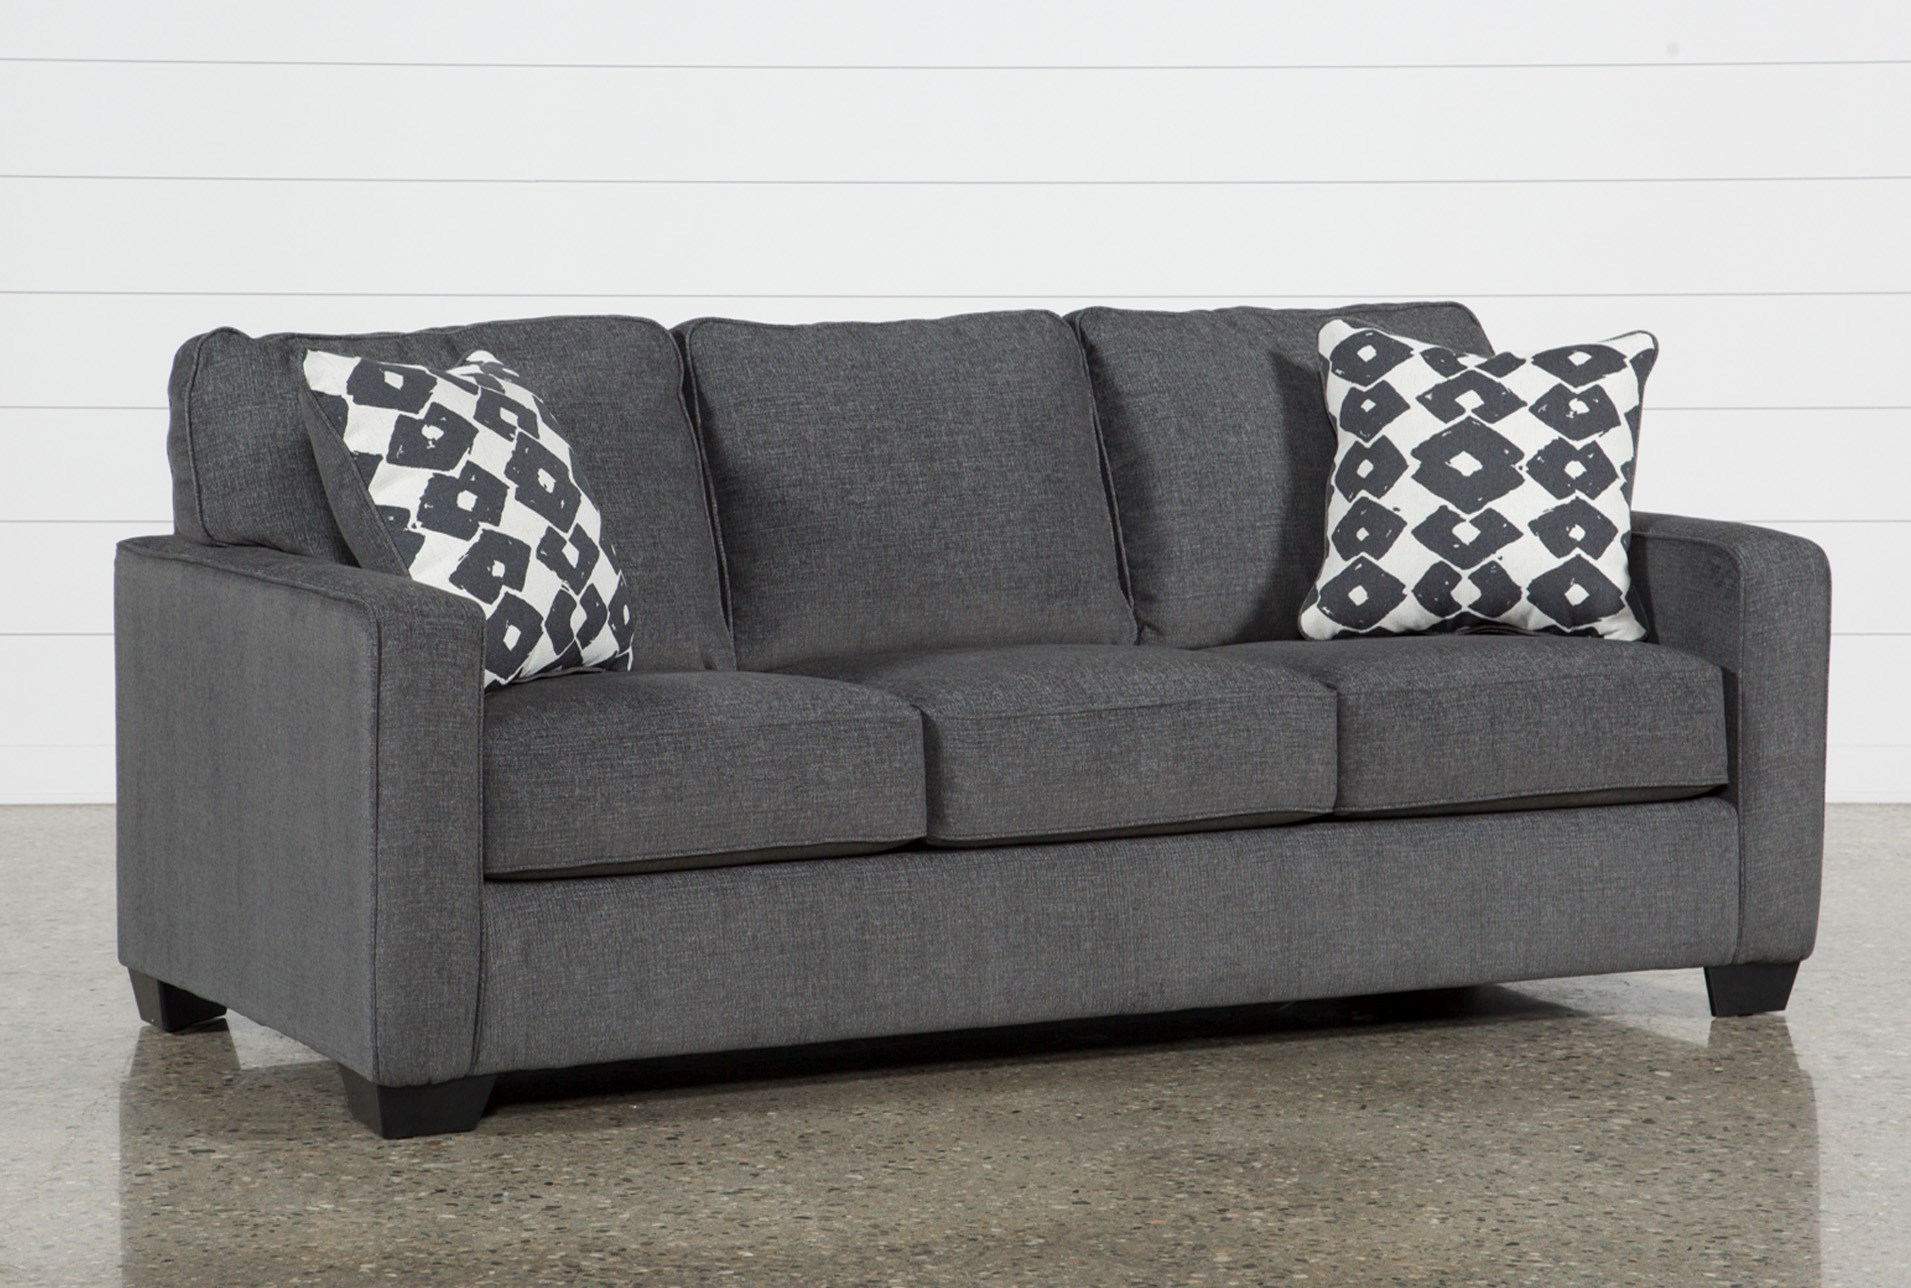 Grey Sofa Beds Grey Couch Turns Into Sofa Beds Marvelous